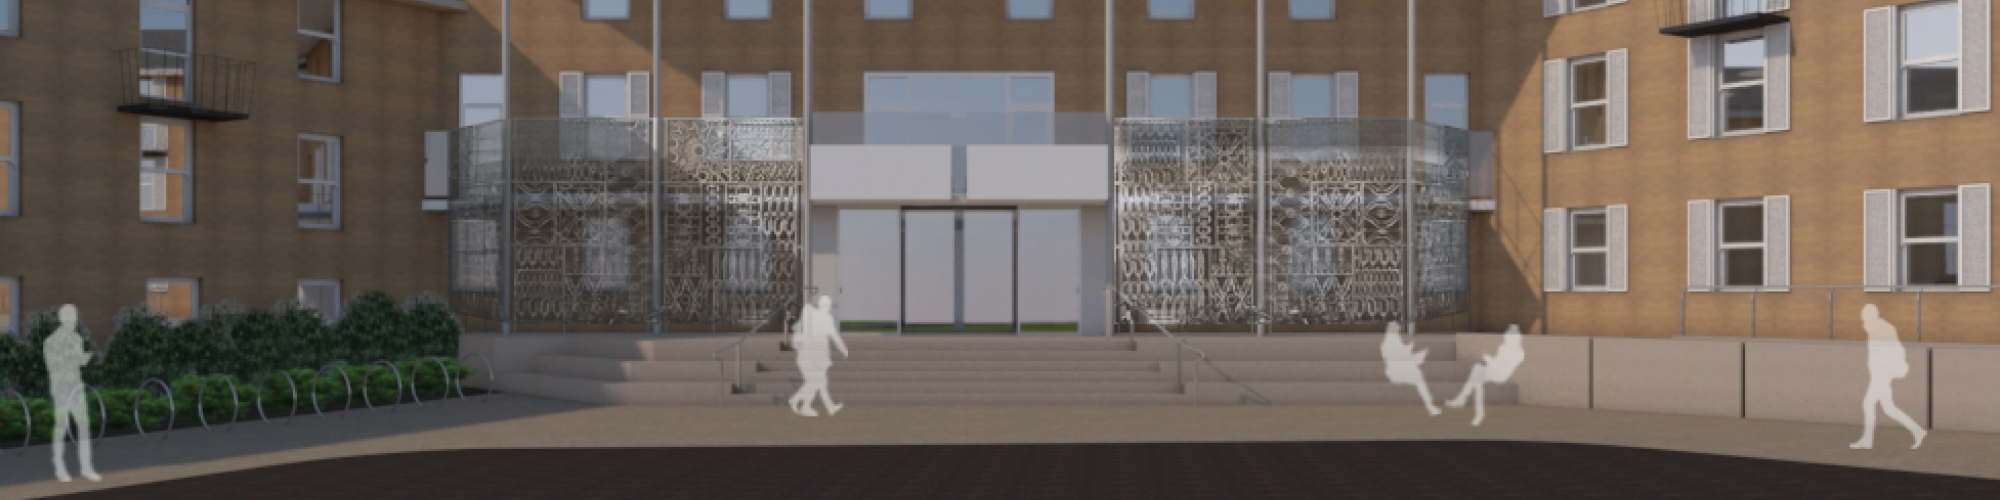 Architect's render of building exterior